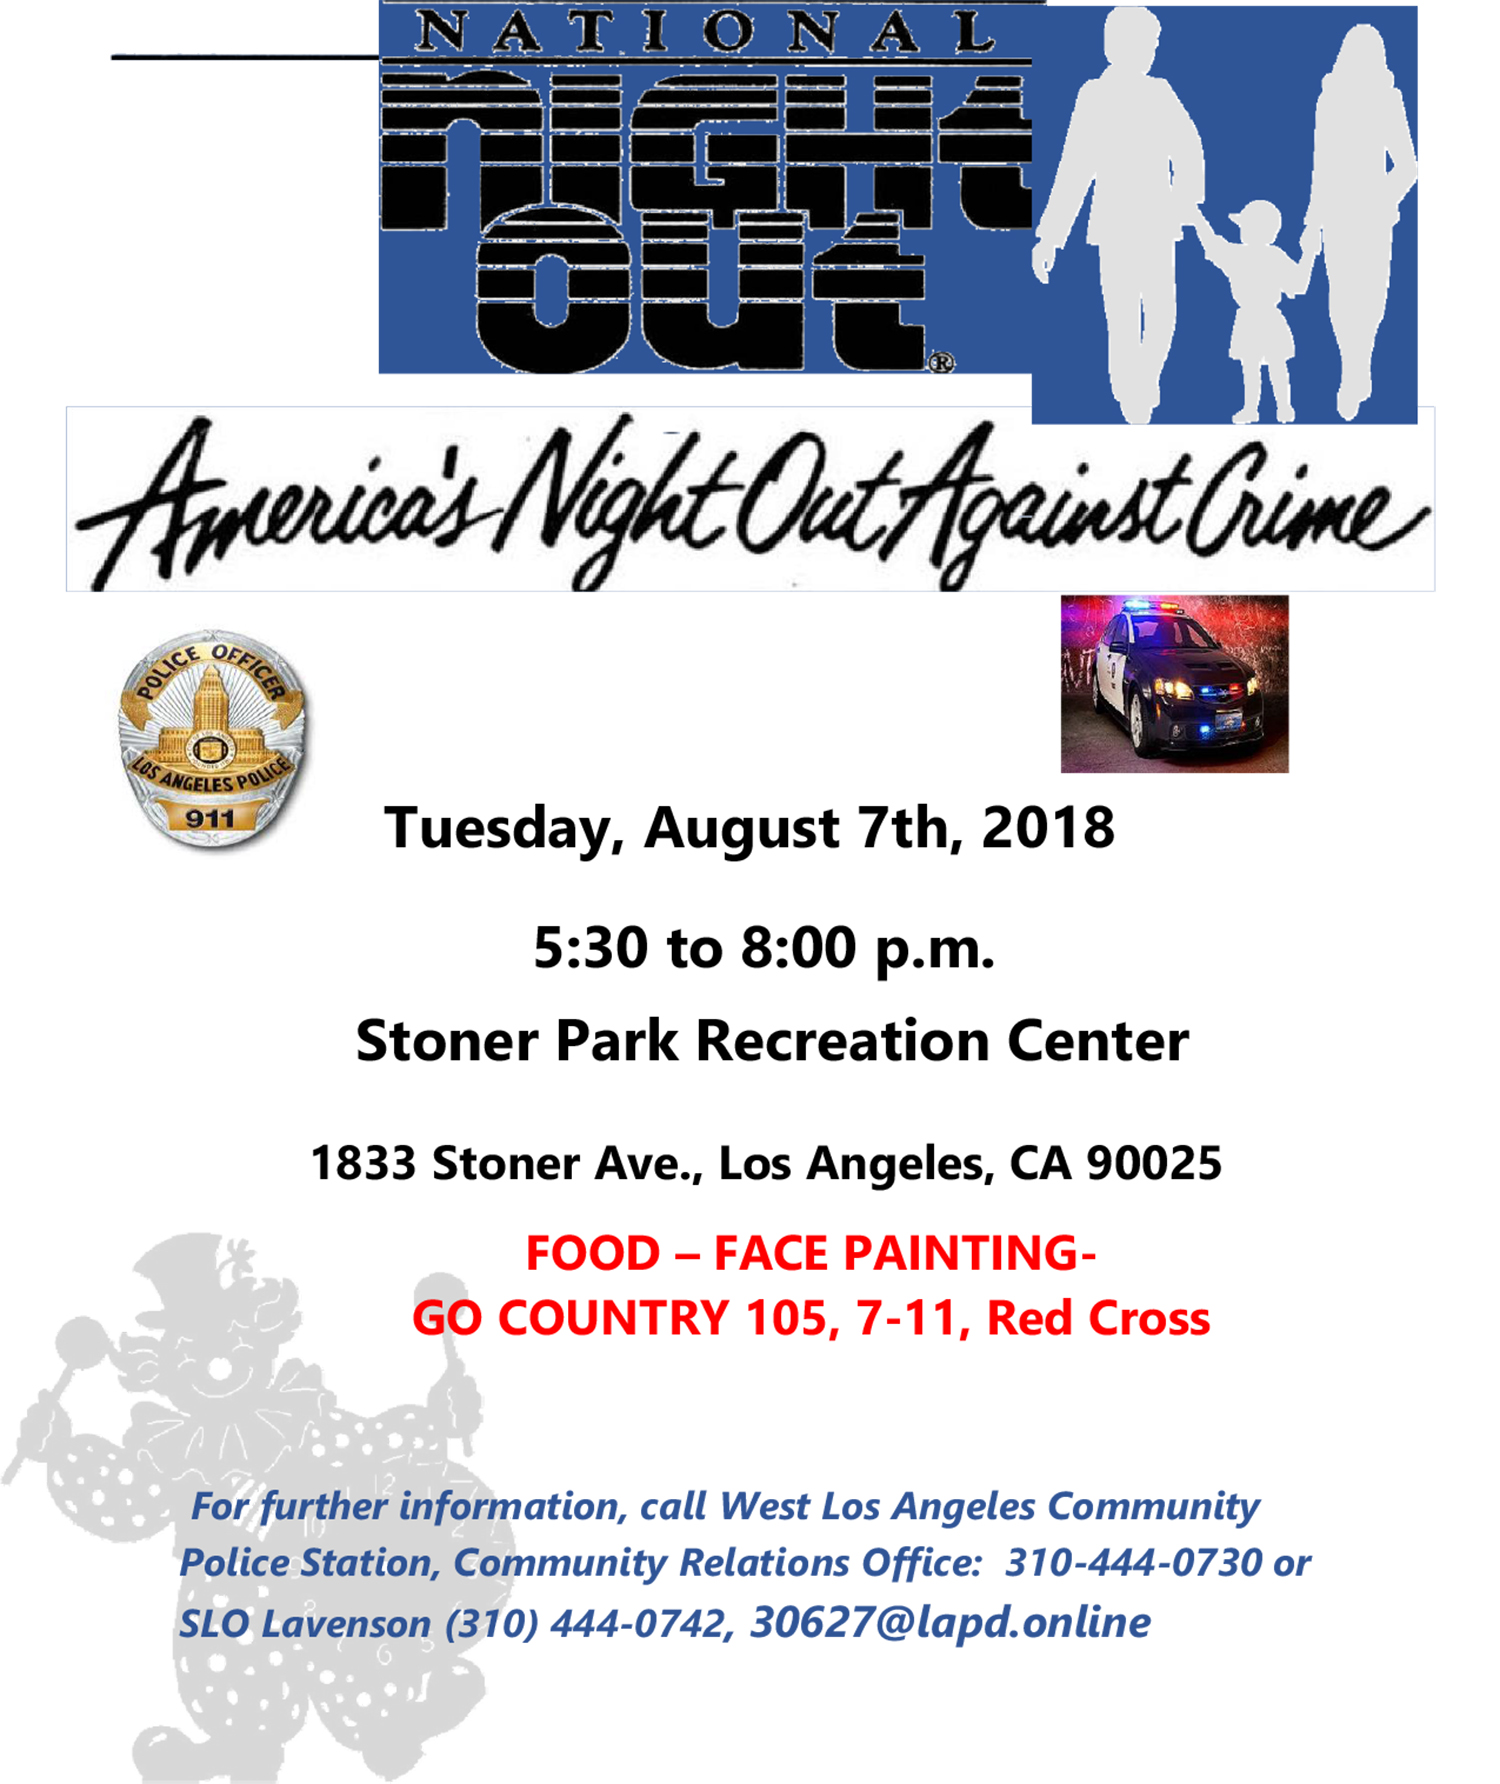 National Night Out Revised 2018-1.jpg